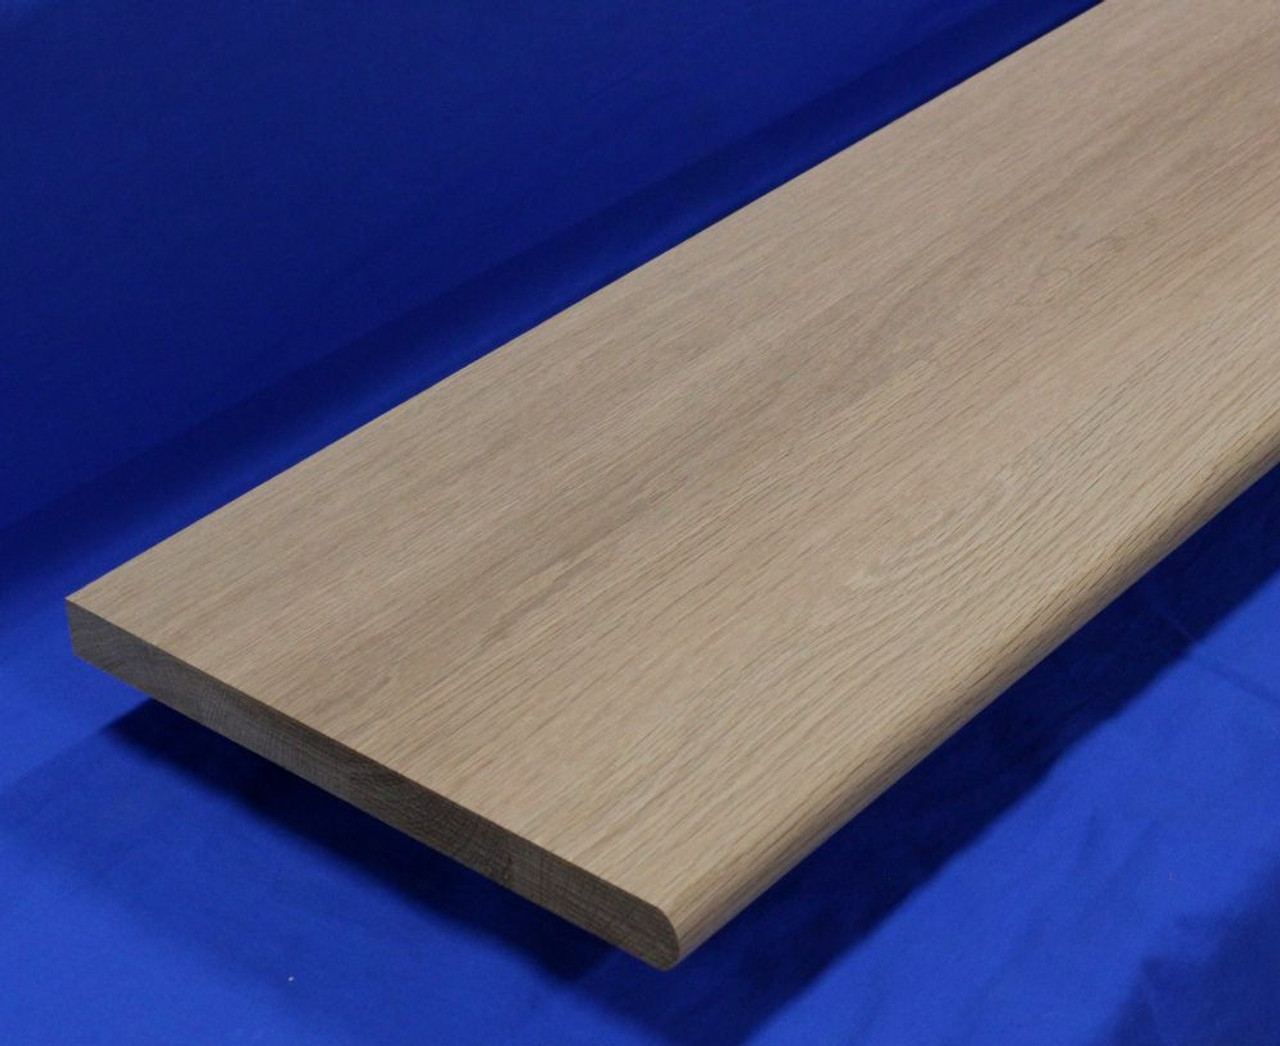 Wood Stair Treads 1Inch Shop Online Made In Usa Kinzel Wood | Unfinished Hickory Stair Treads | Hardwood Lumber | Stair Nosing | Stainable | Flooring | Prefinished